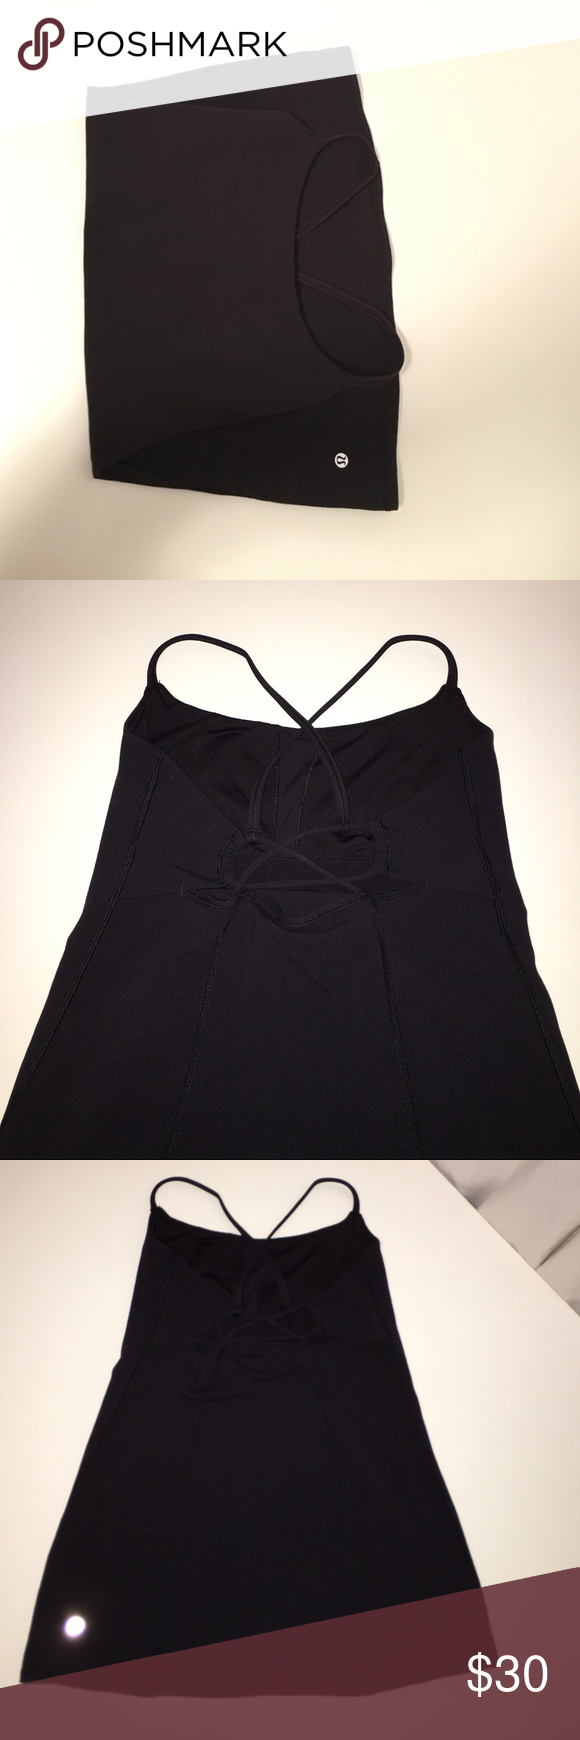 Lululemon razorback with cute detailing Wunderunder material, built in bra, like new condition. lululemon athletica Tops Tank Tops